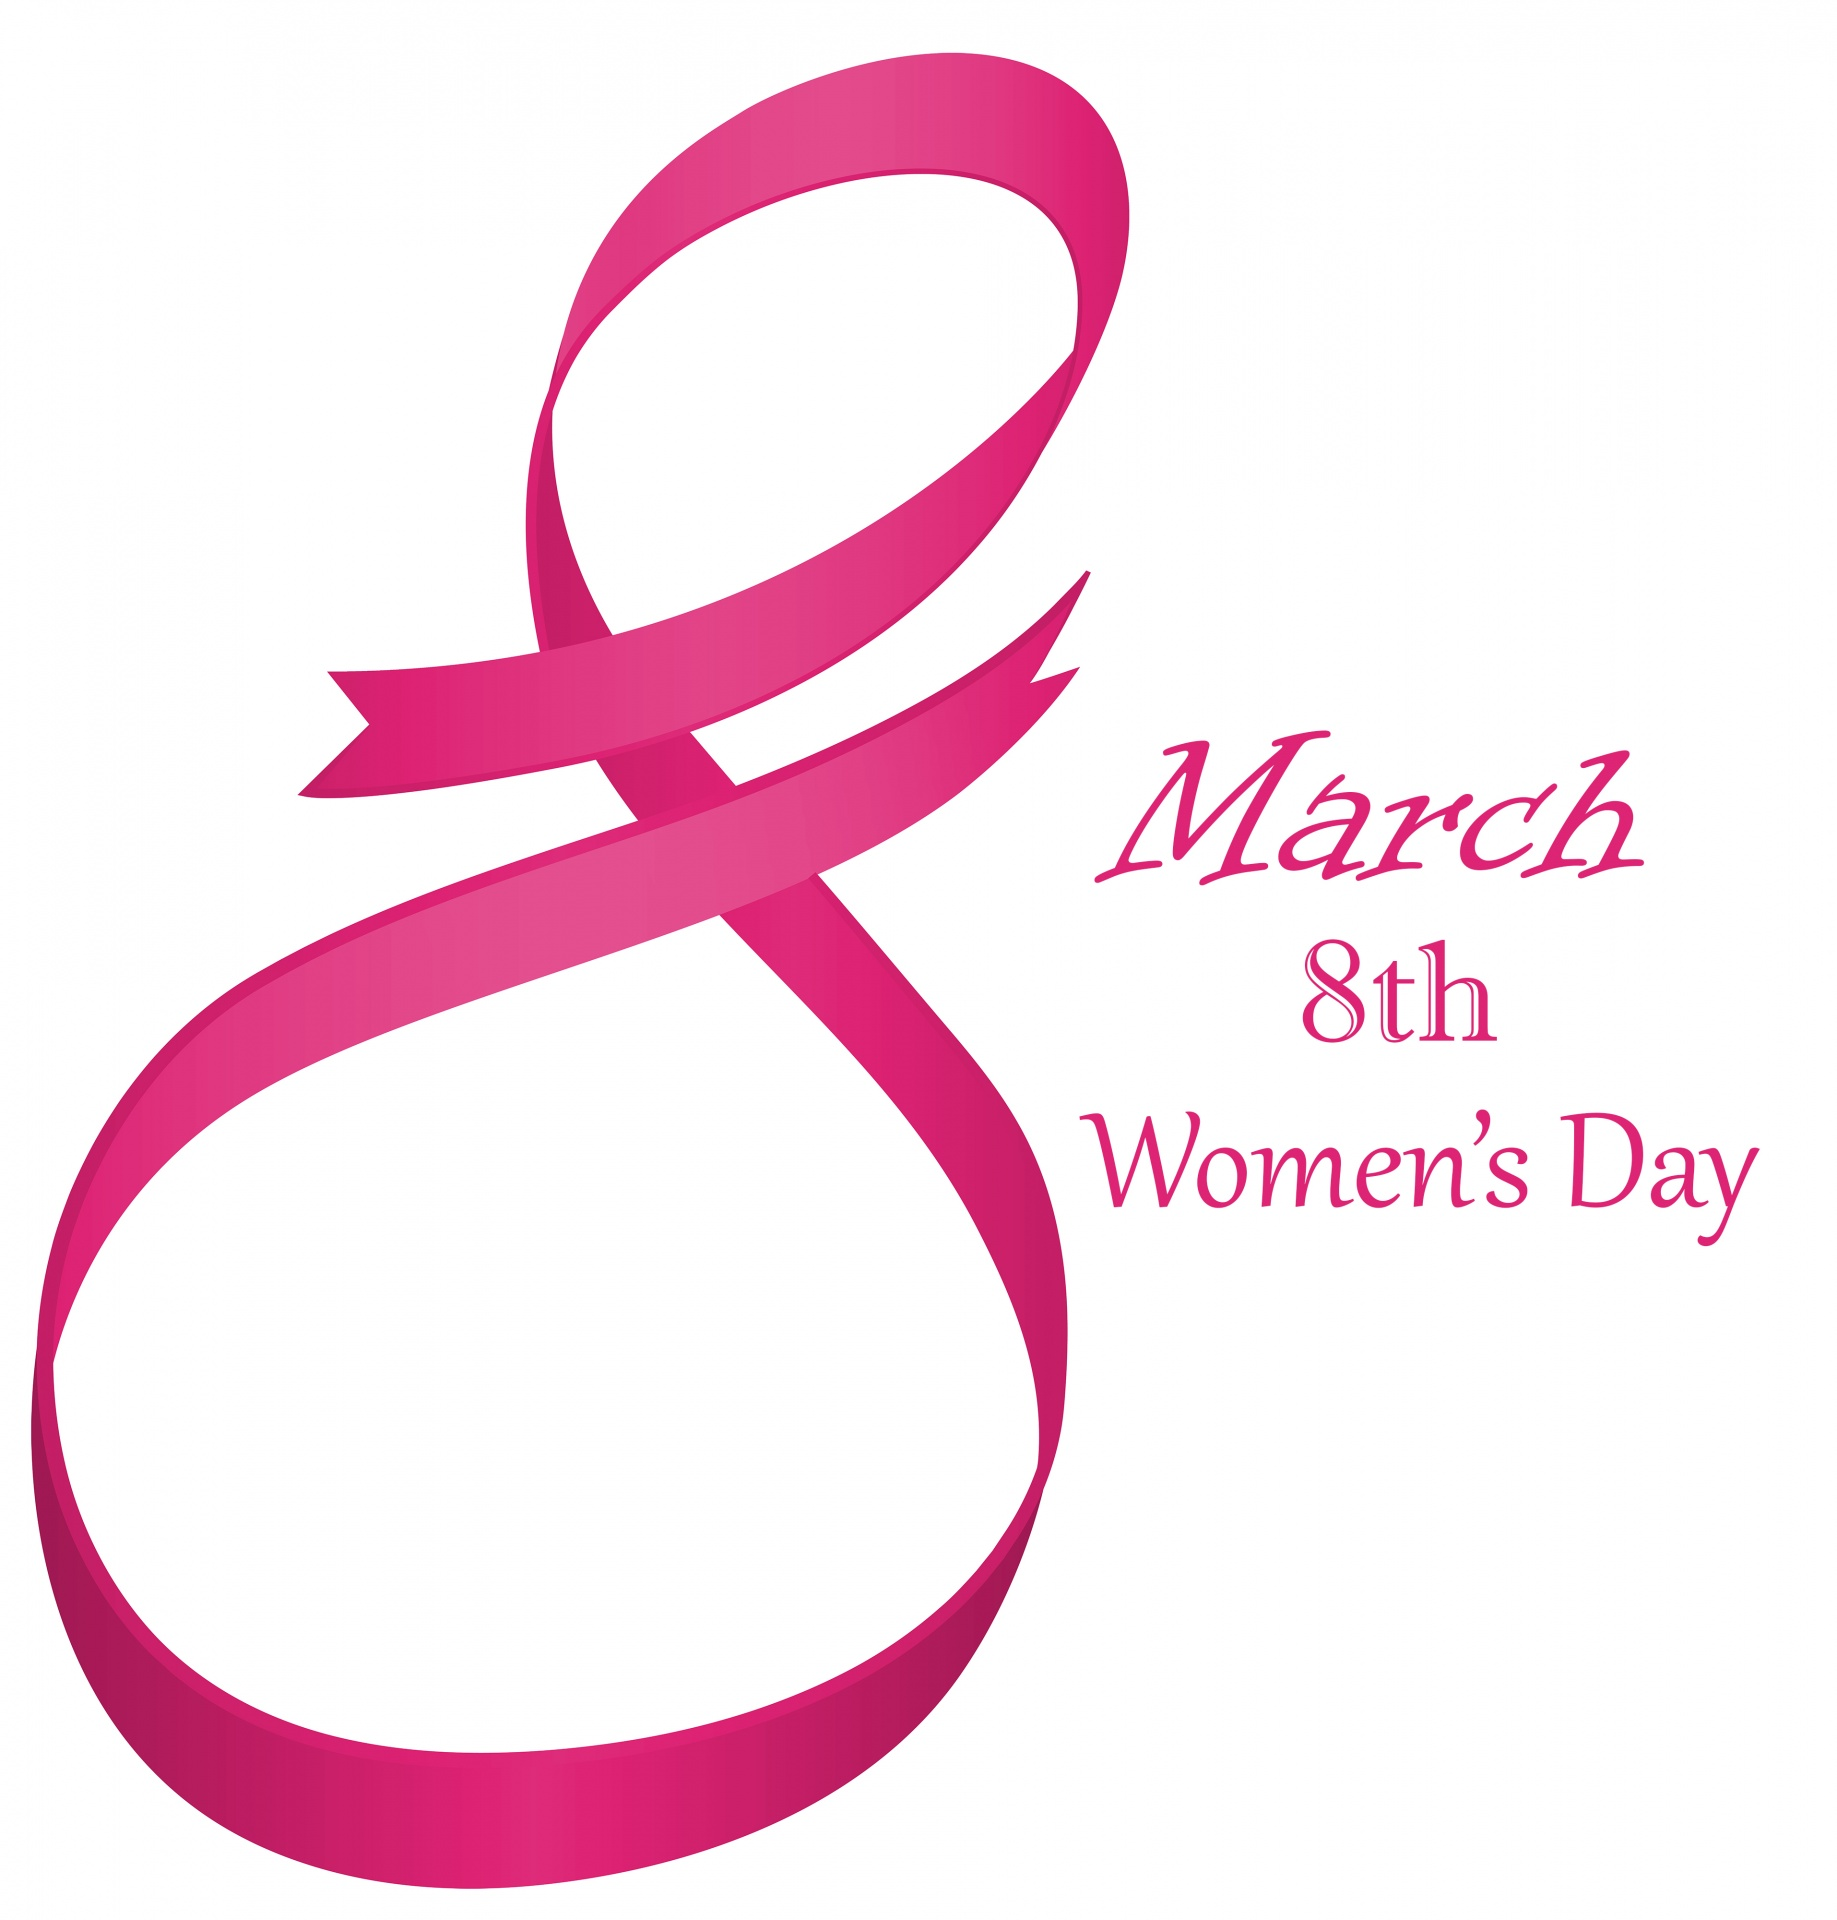 8th March Women's Day Images